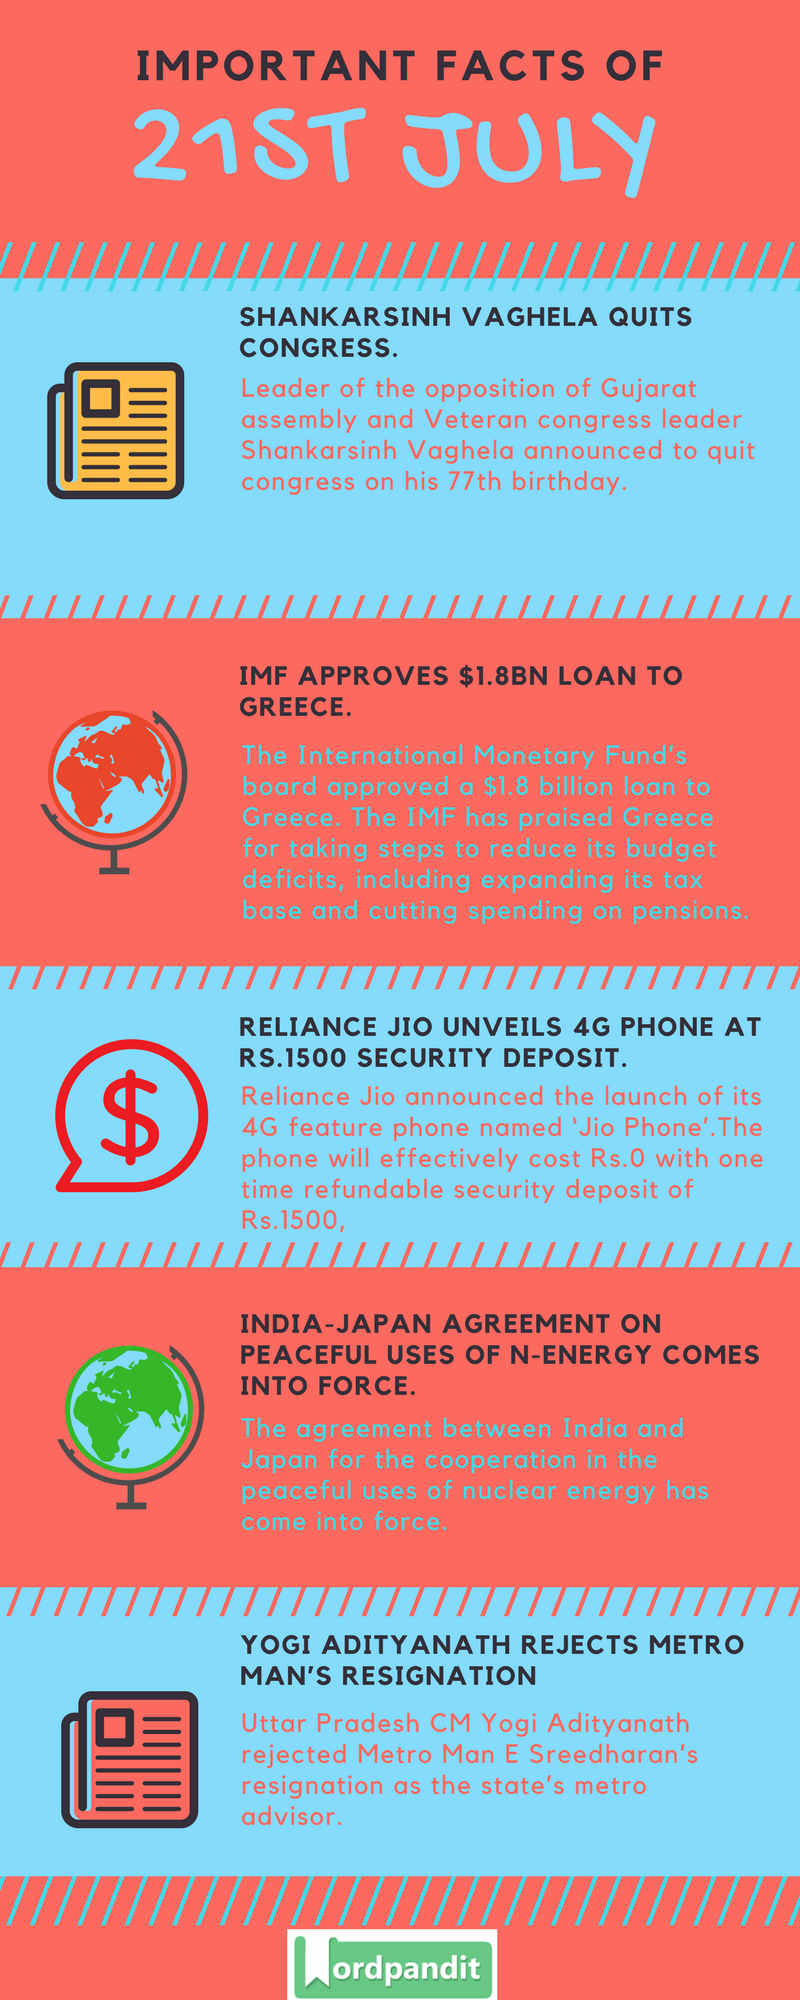 Daily-Current-Affairs-21-july-2017-Current-Affairs-Quiz-july-21-2017-Current-Affairs-Infographic